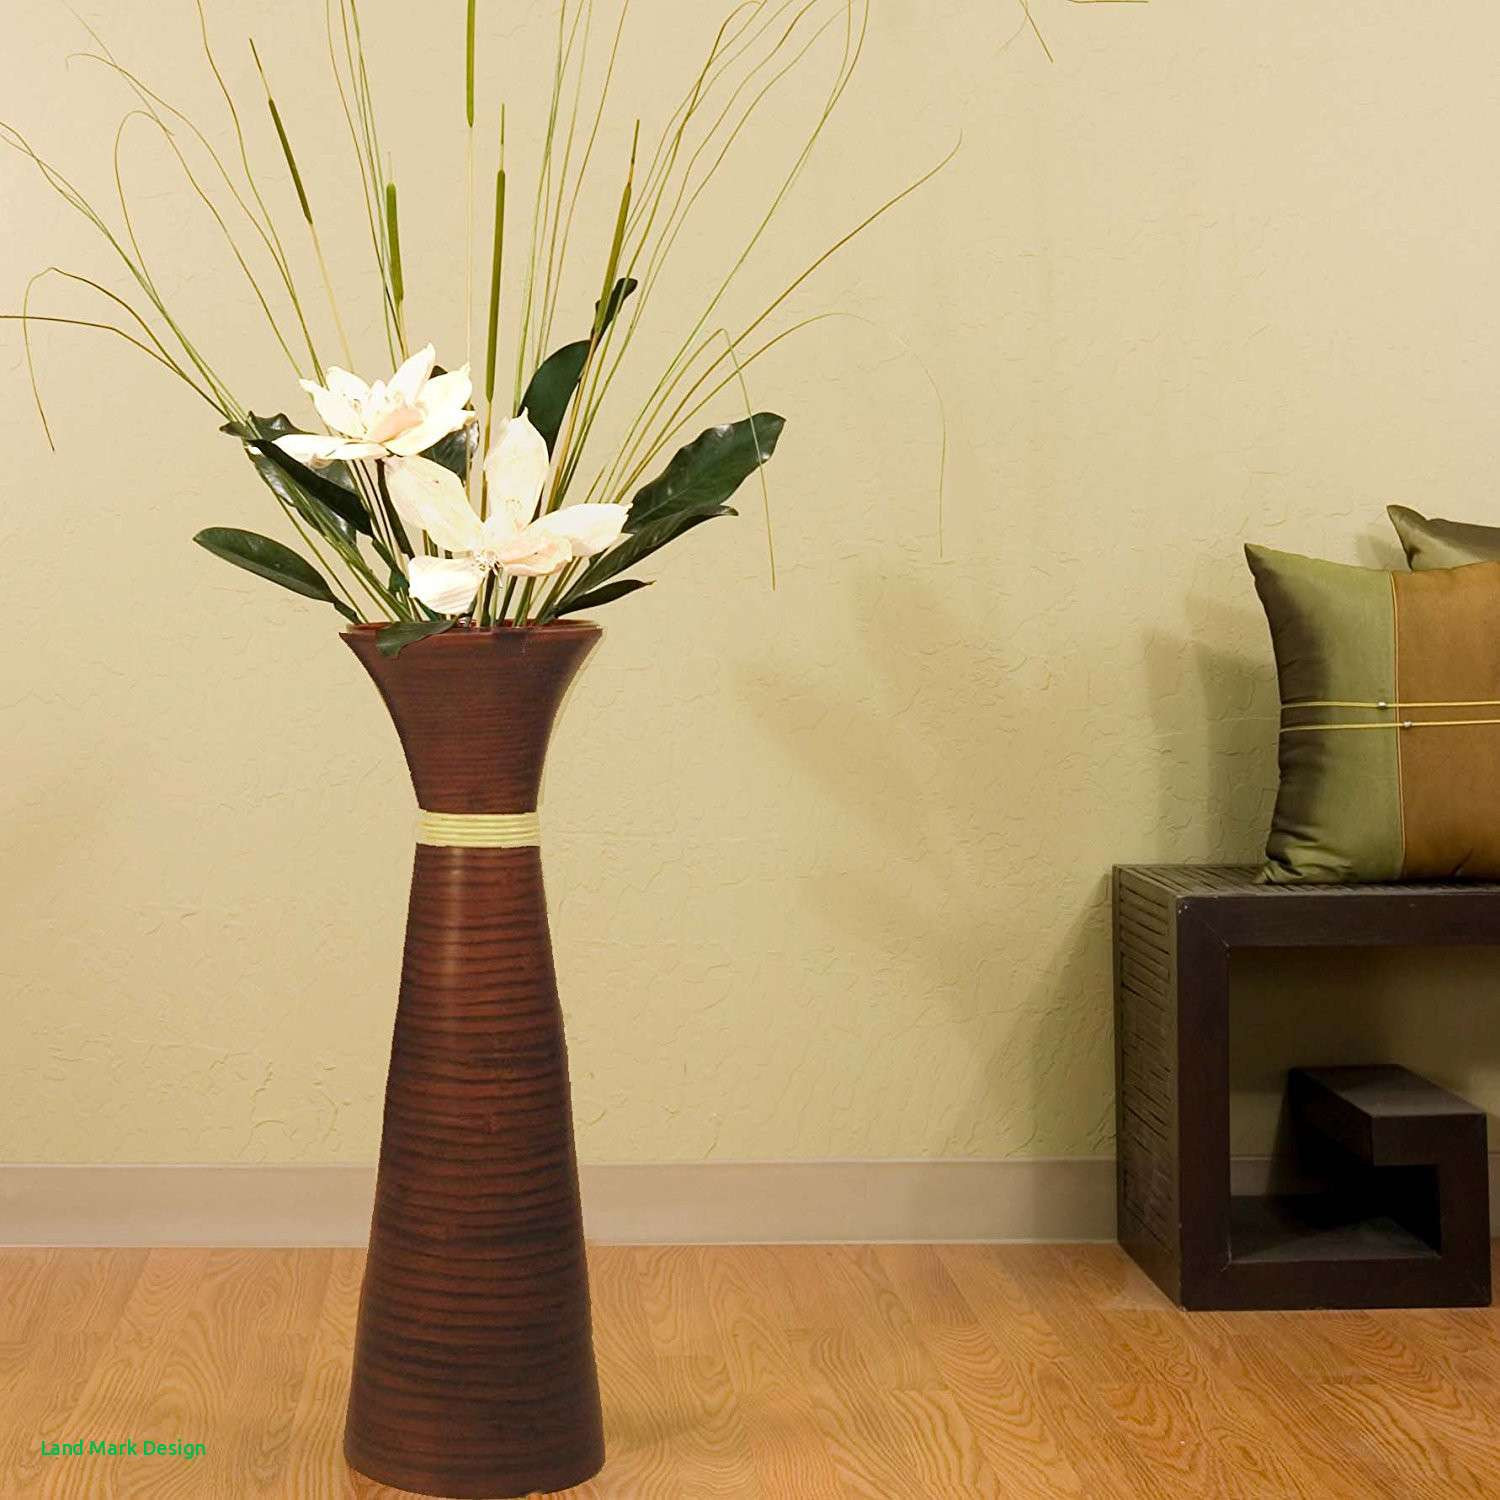 tall floor vases amazon of about bamboo flooring home decor home design intended for 71md pjquyl sl1500 h vases red floor vase amazon com green floral crafts 28 in plantation